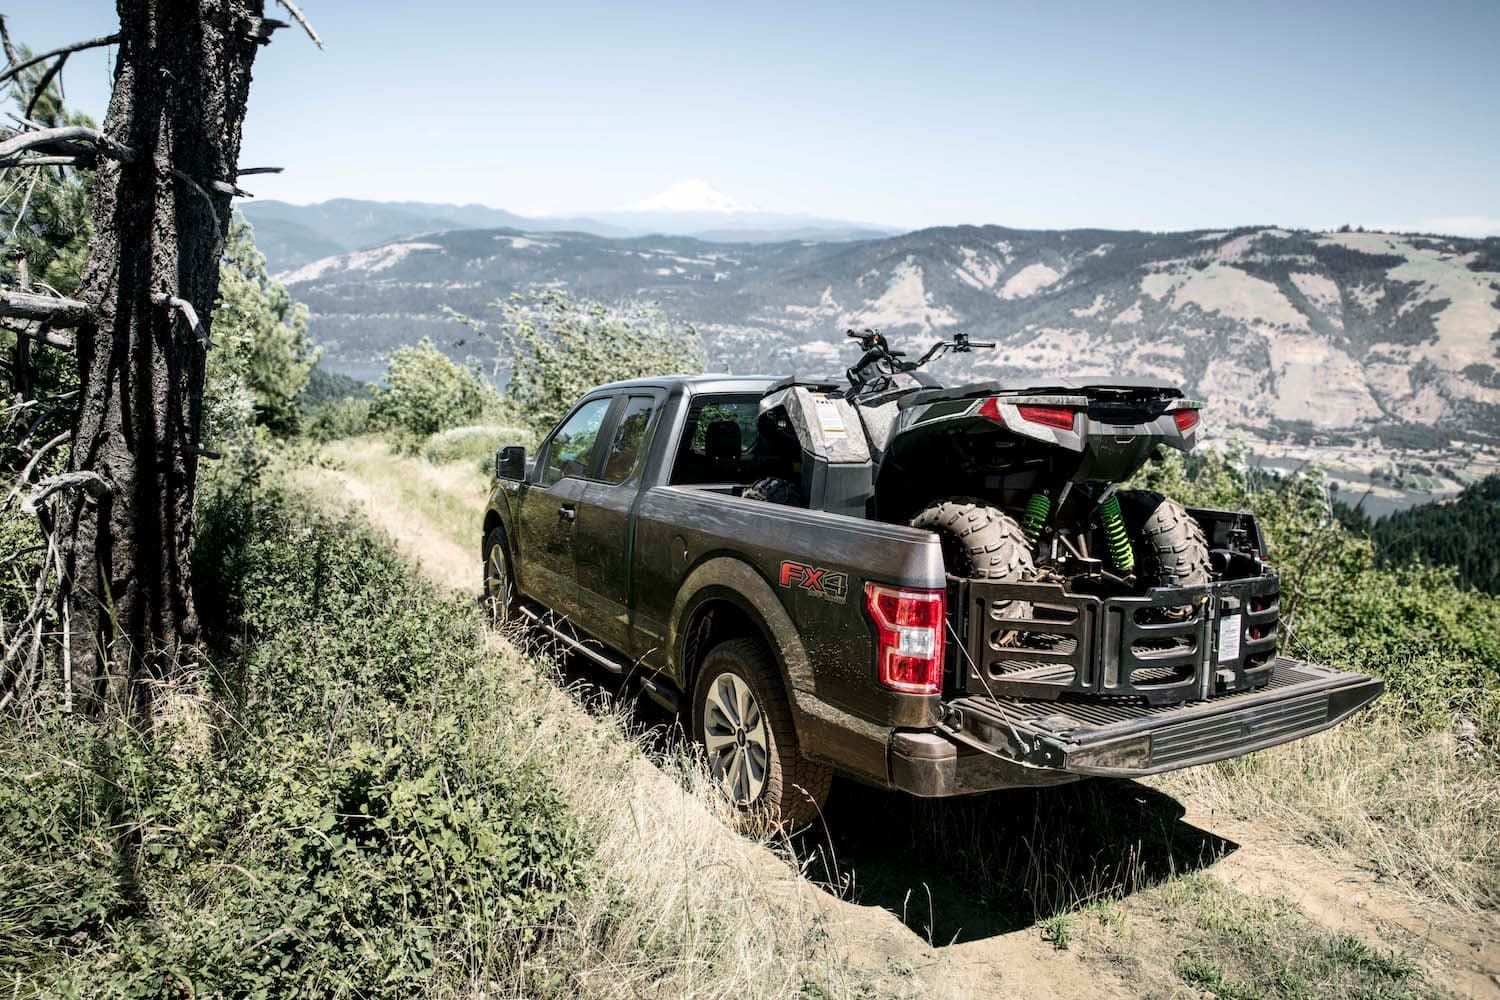 Ford F-150 Towing an ATV